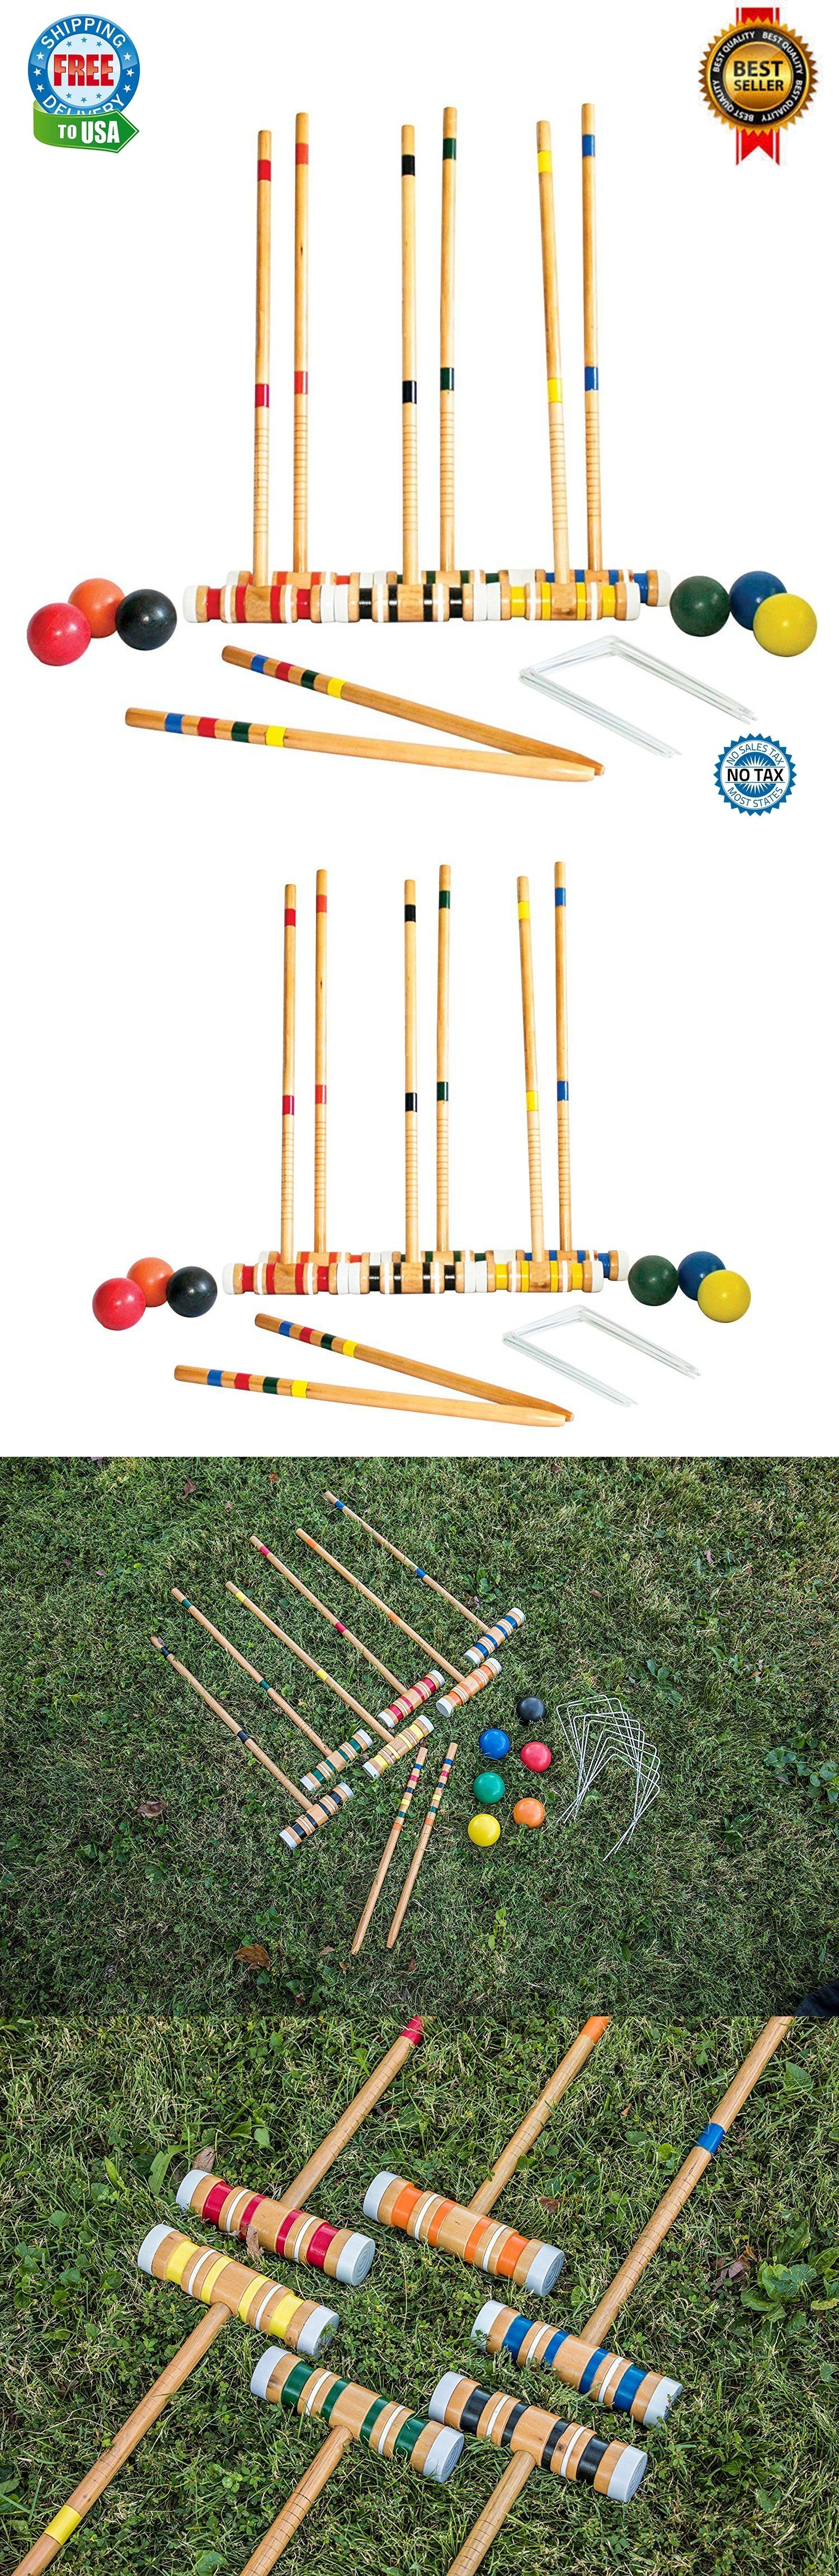 croquet 117210 croquet set vintage wooden game six player